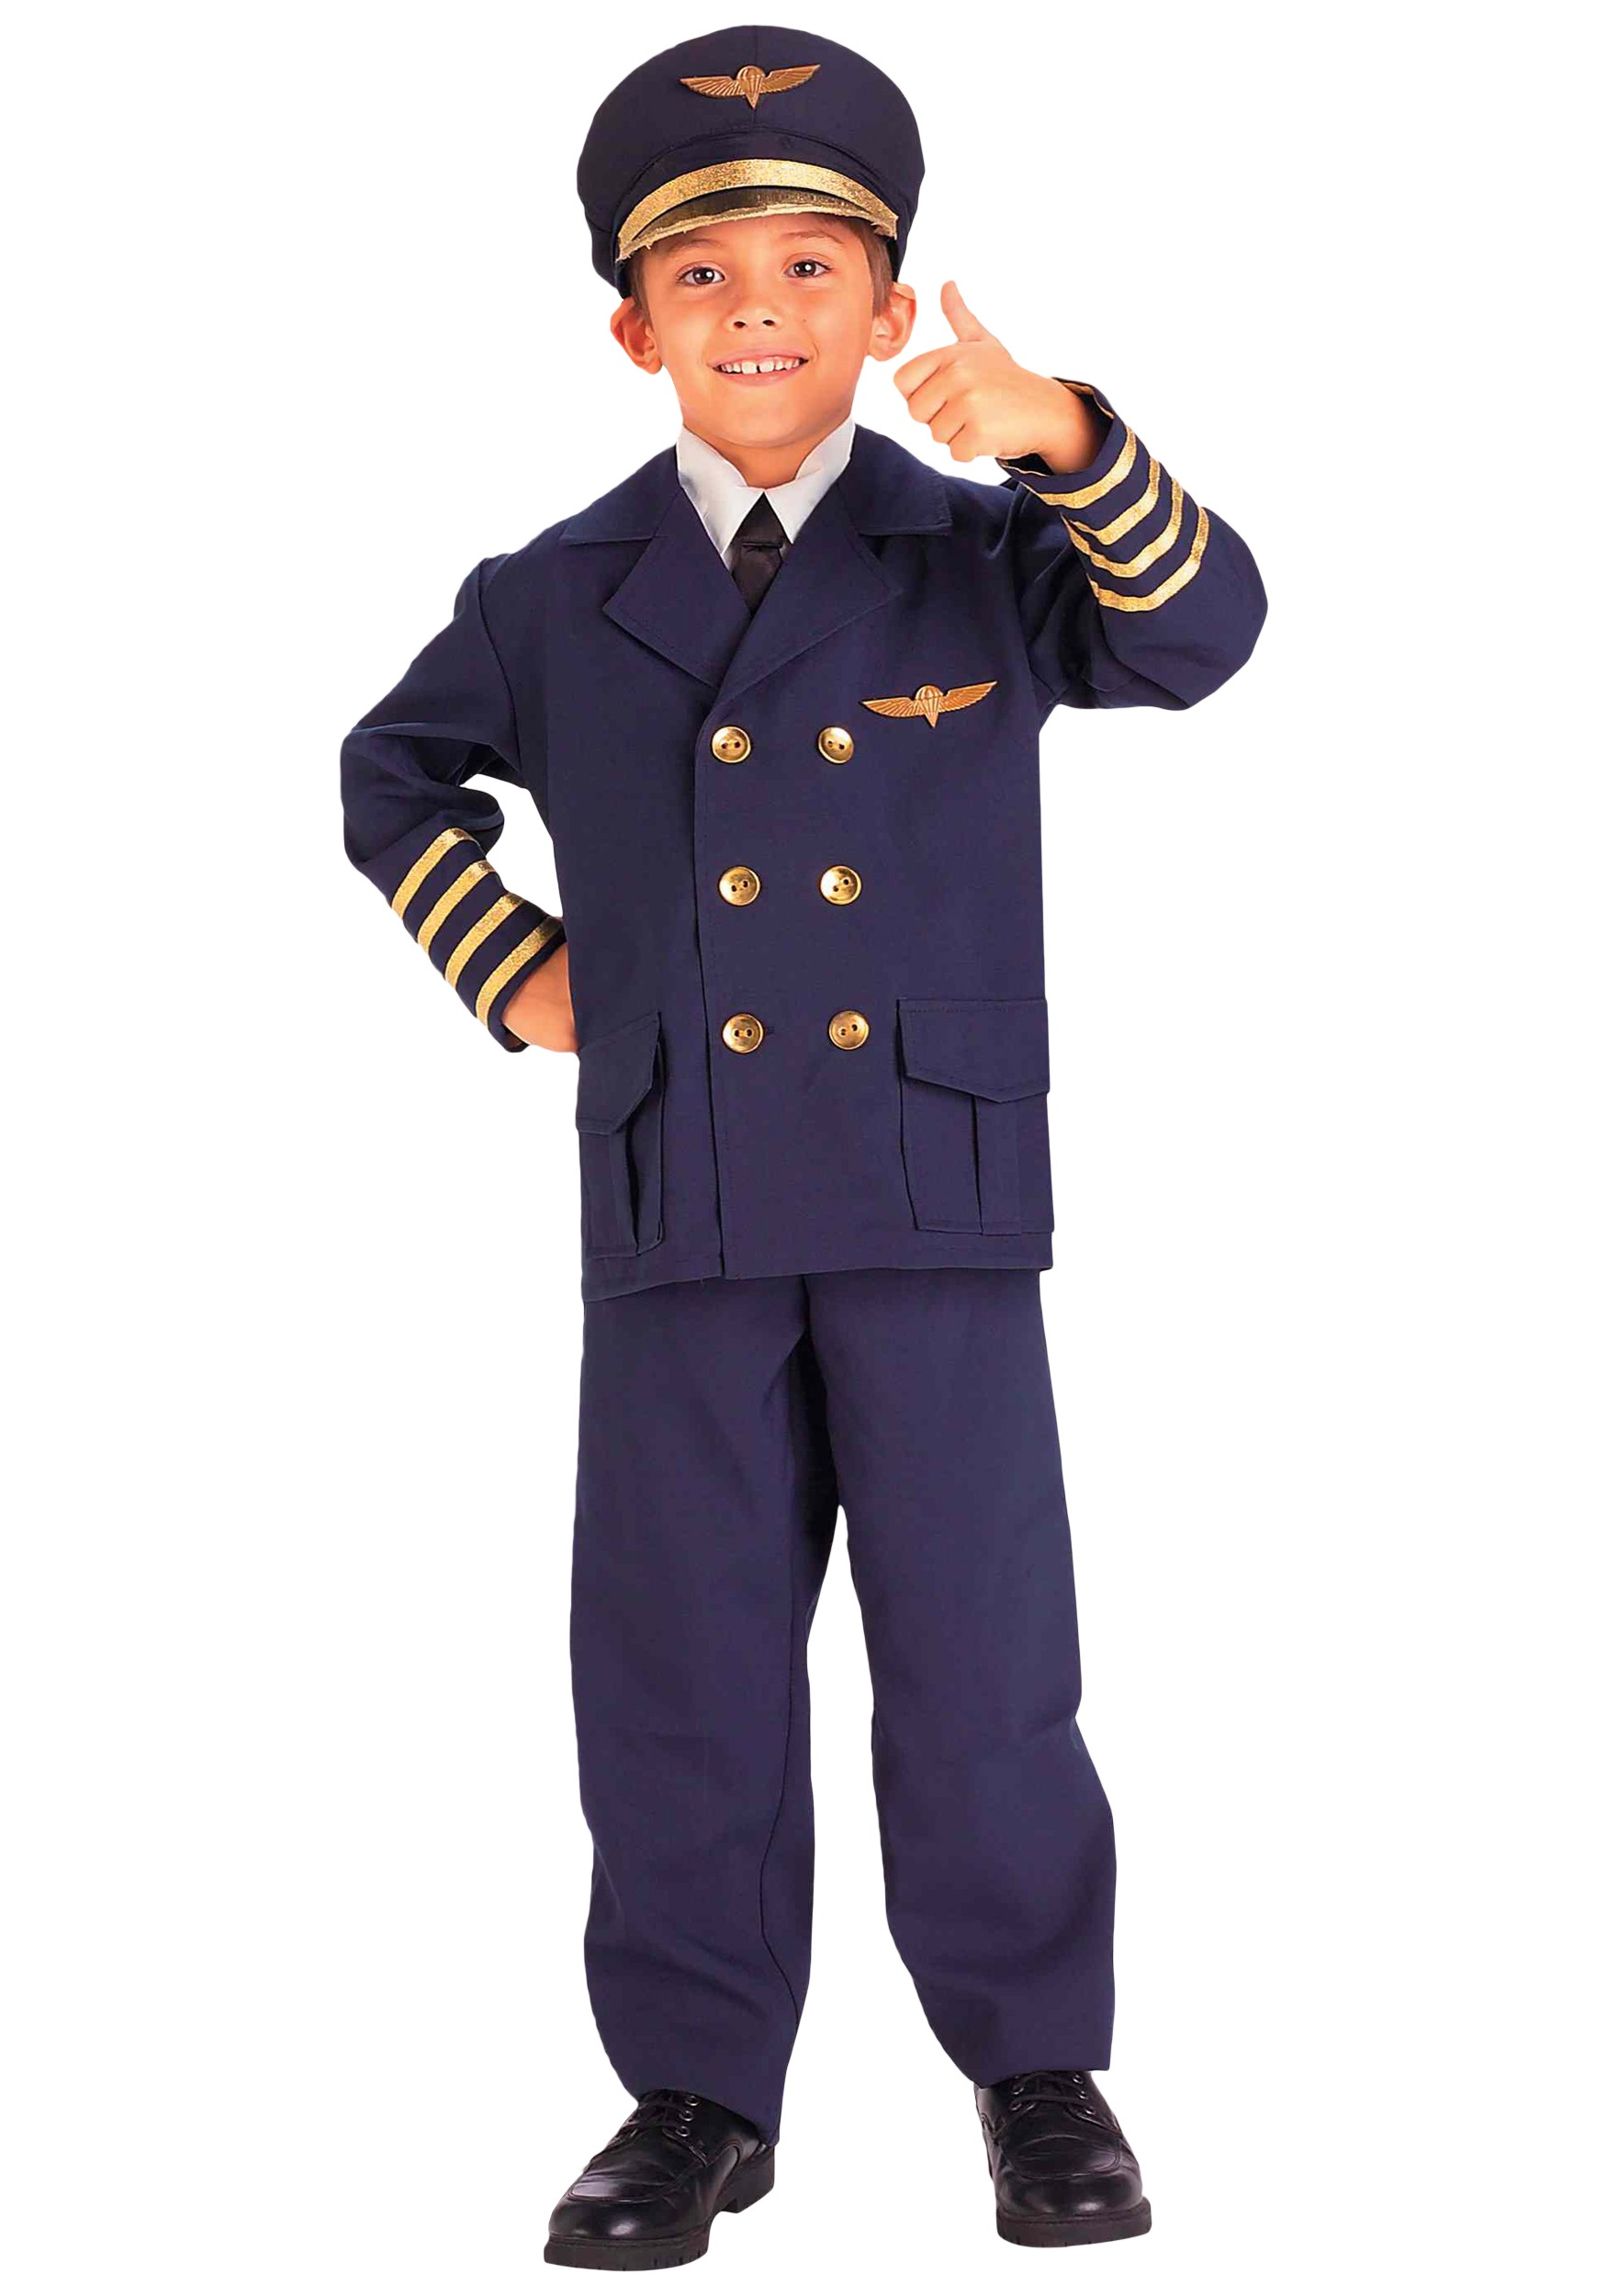 sc 1 st  Halloween Costumes & Child Airline Pilot Costume